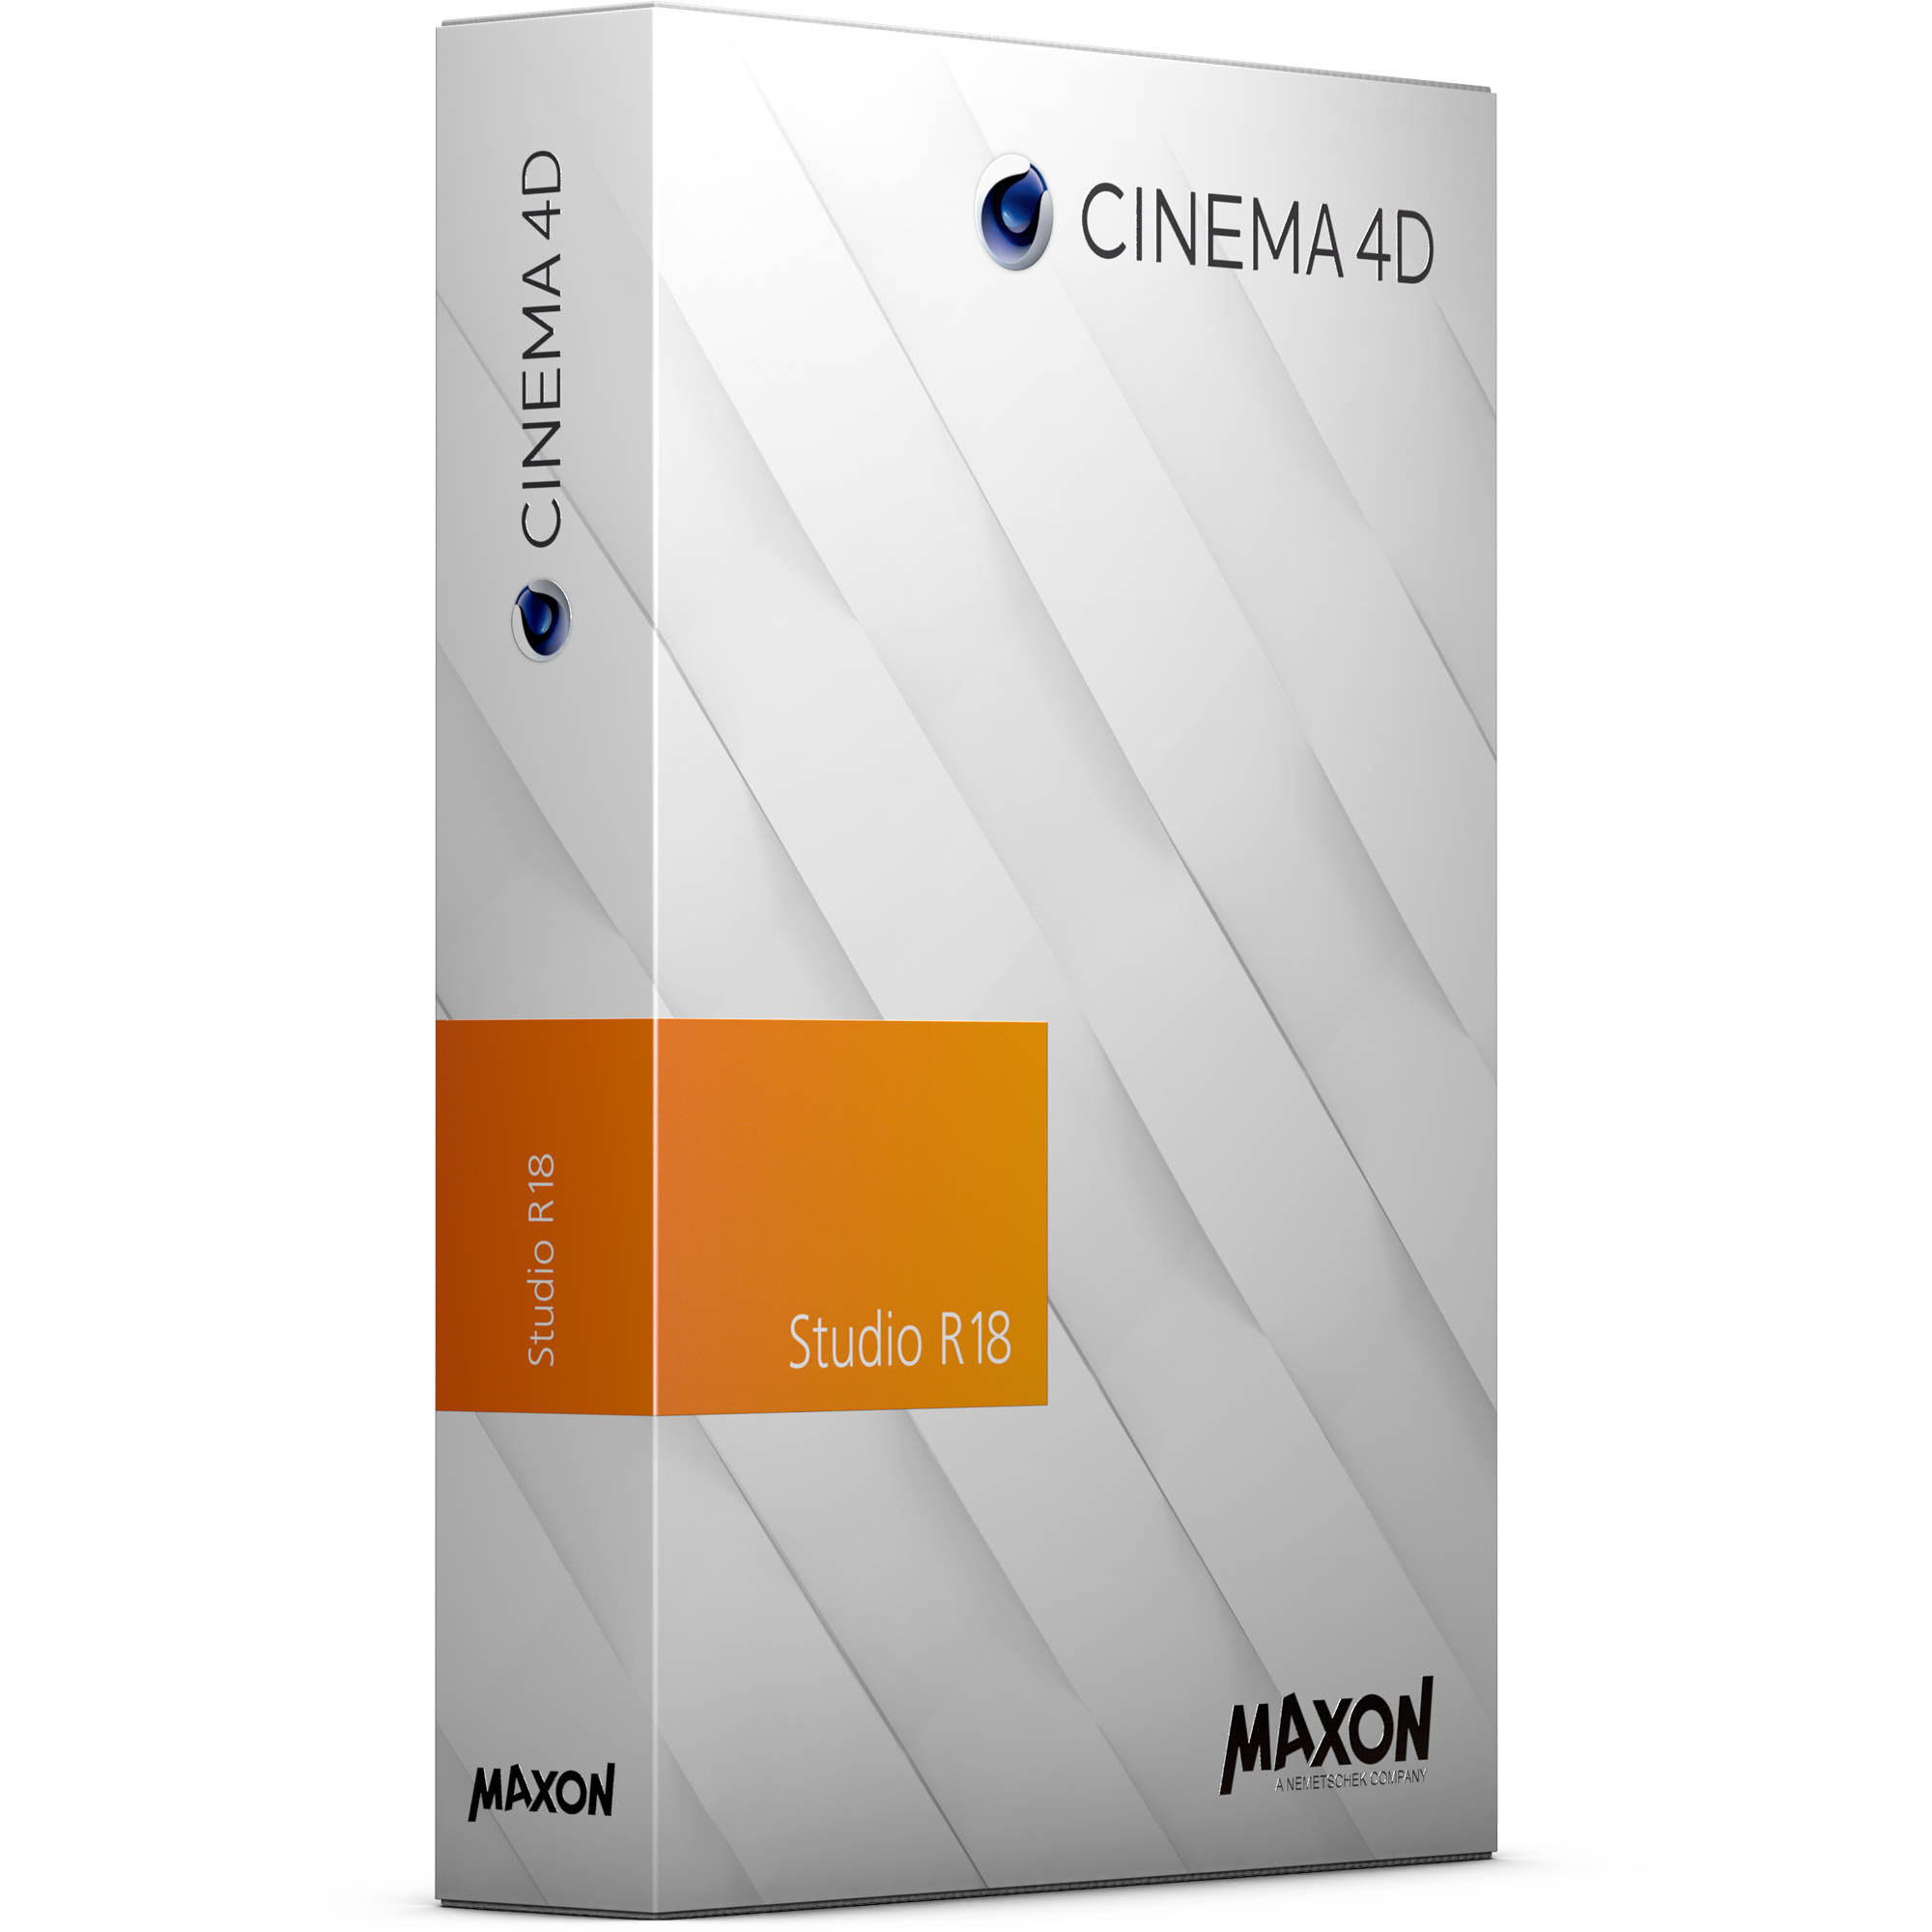 MAXON Prices - Give us your feedback! - CAFE NEWS - C4D Cafe